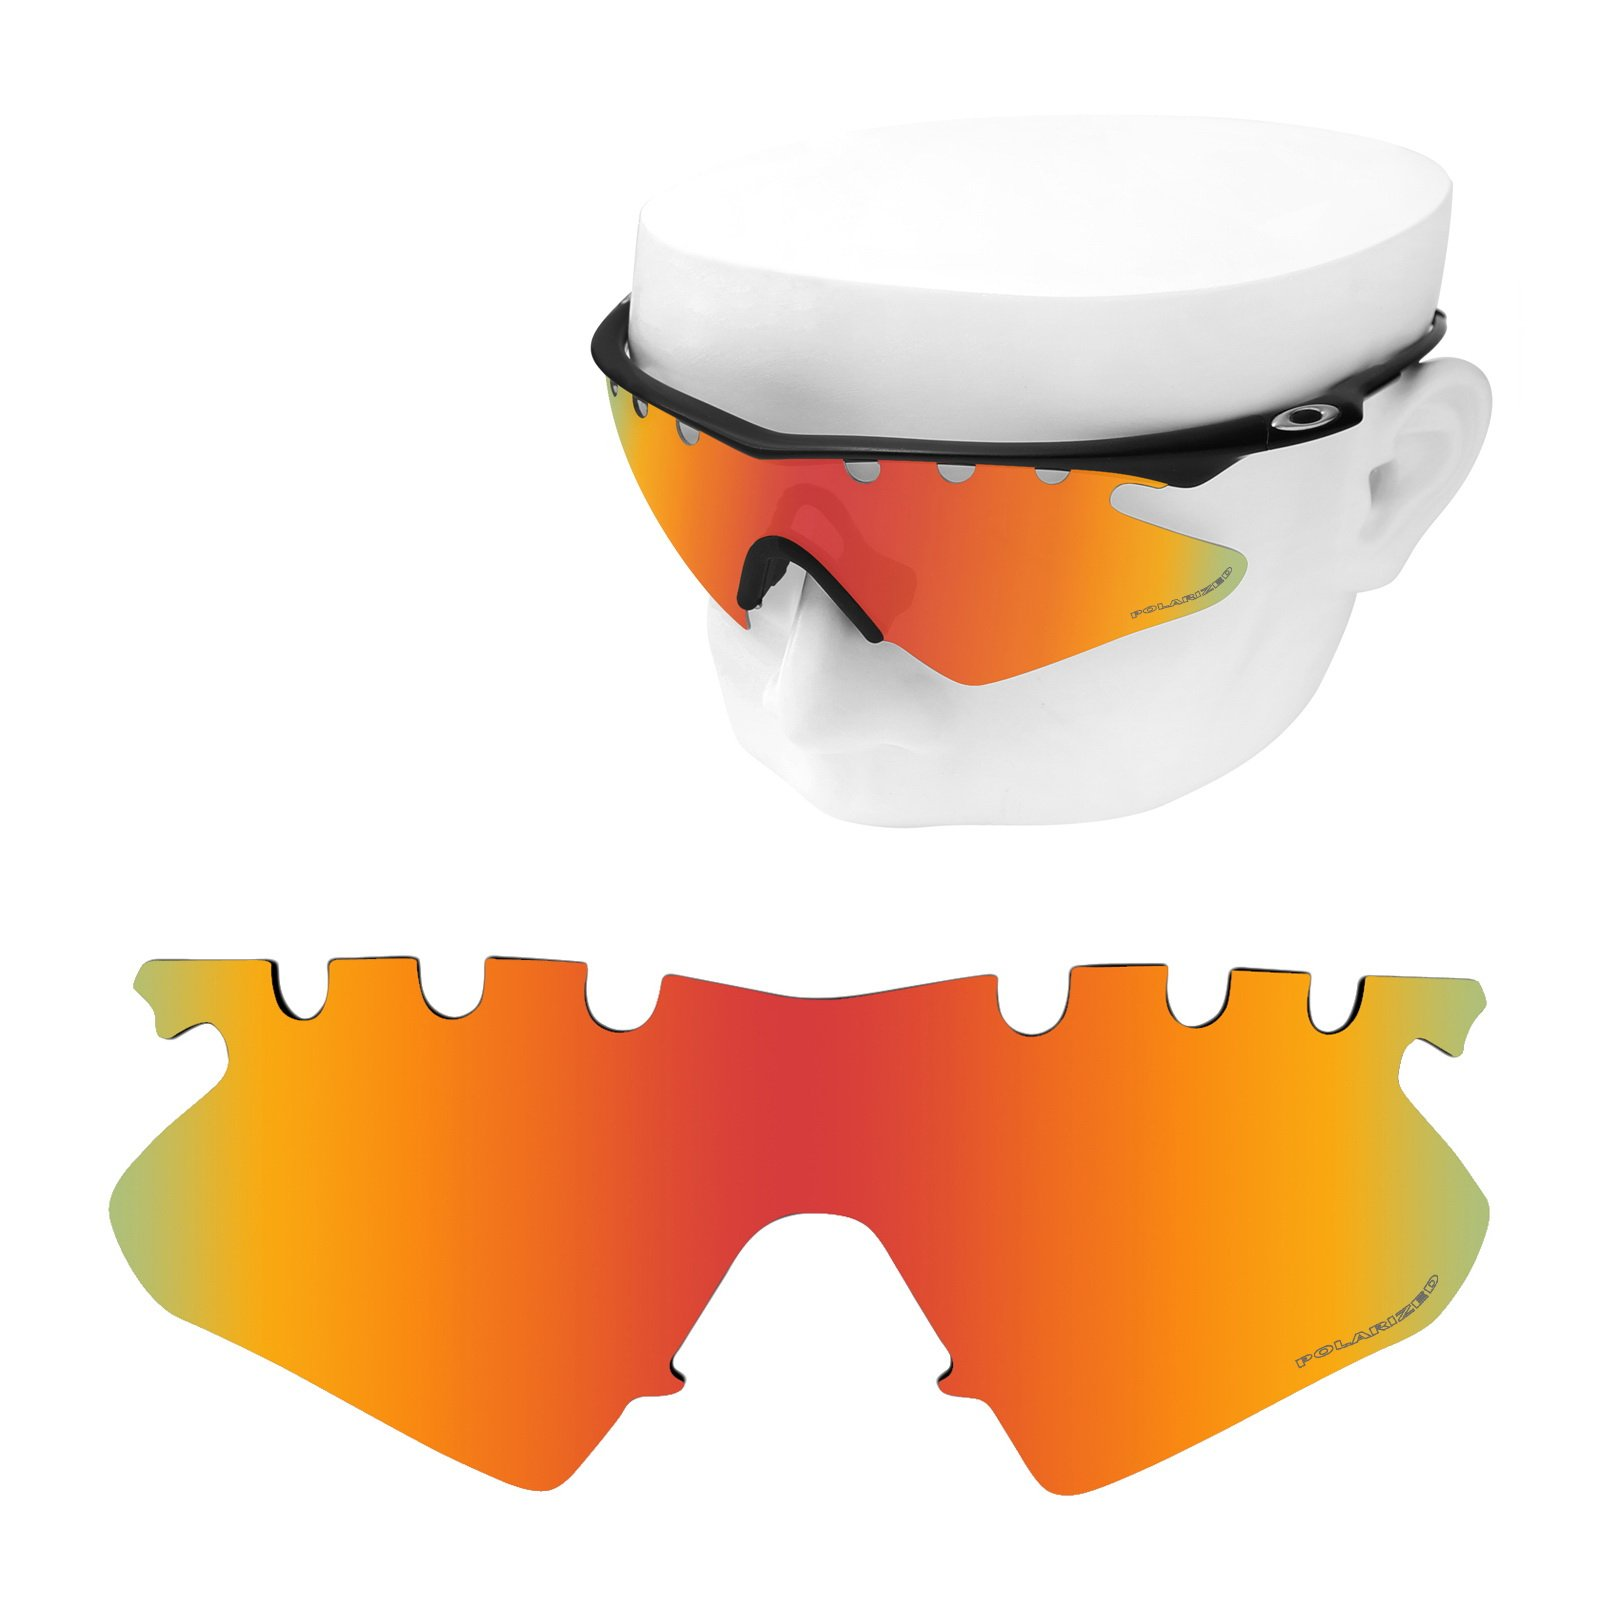 OOWLIT Replacement Sunglass Lenses for Oakley M Frame Heater Vented Fire Combine8 Polarized